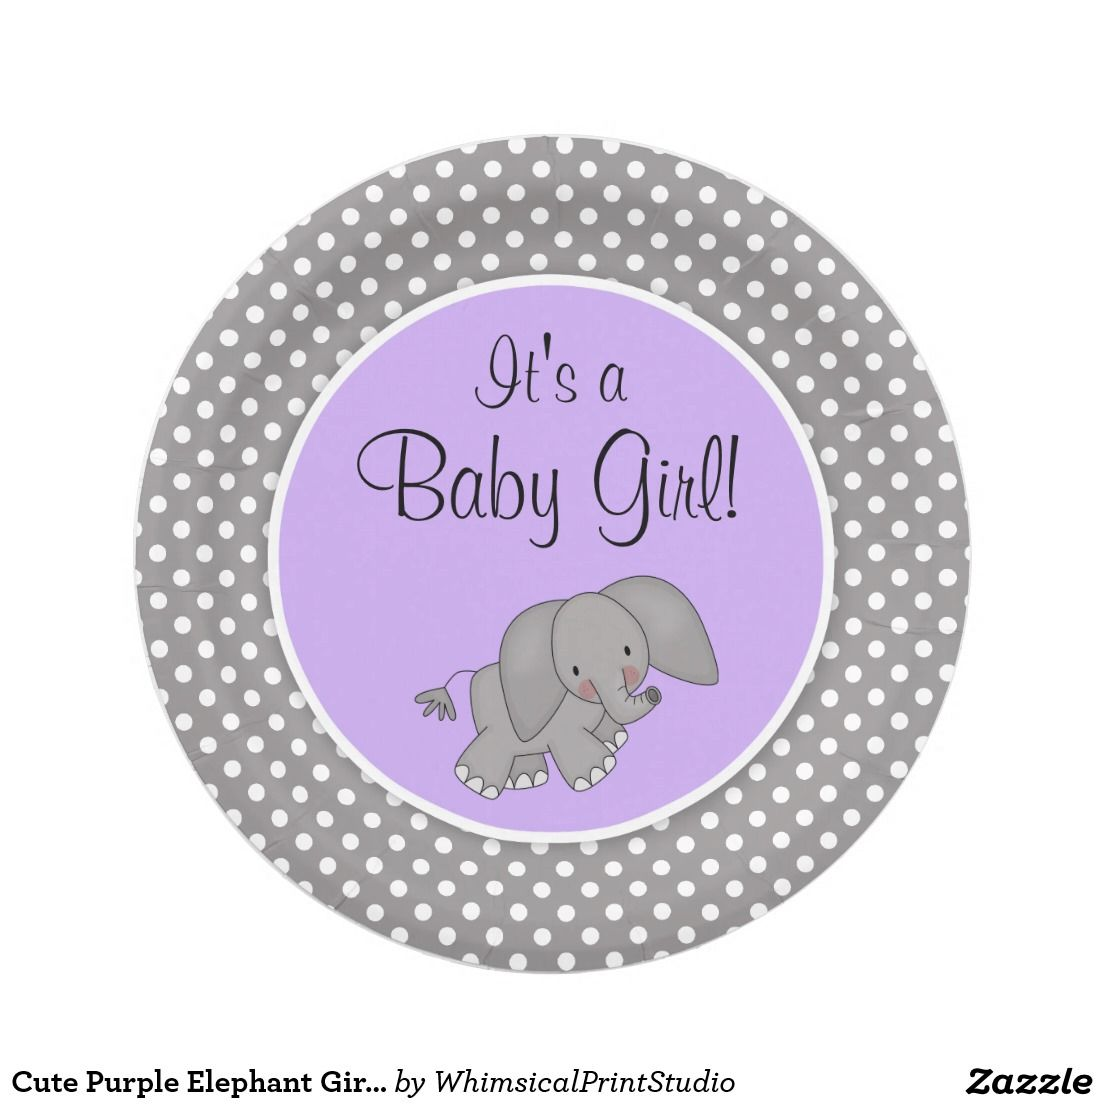 Cute Purple Elephant Girl Baby Shower Paper Plate  sc 1 st  Pinterest & Cute Purple Elephant Girl Baby Shower Paper Plate | Babyshower